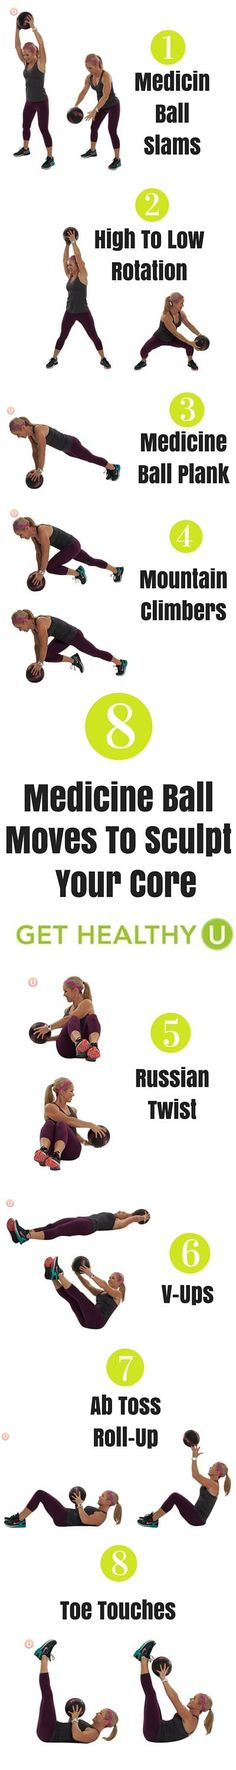 Get ready to slam, twist, plank, toss and rotate all to help strengthen and define that beautiful six-pack! This medicine ball workout is great on its own or tagged on to another cardio routine. Try these 8 moves to sculpt your core!